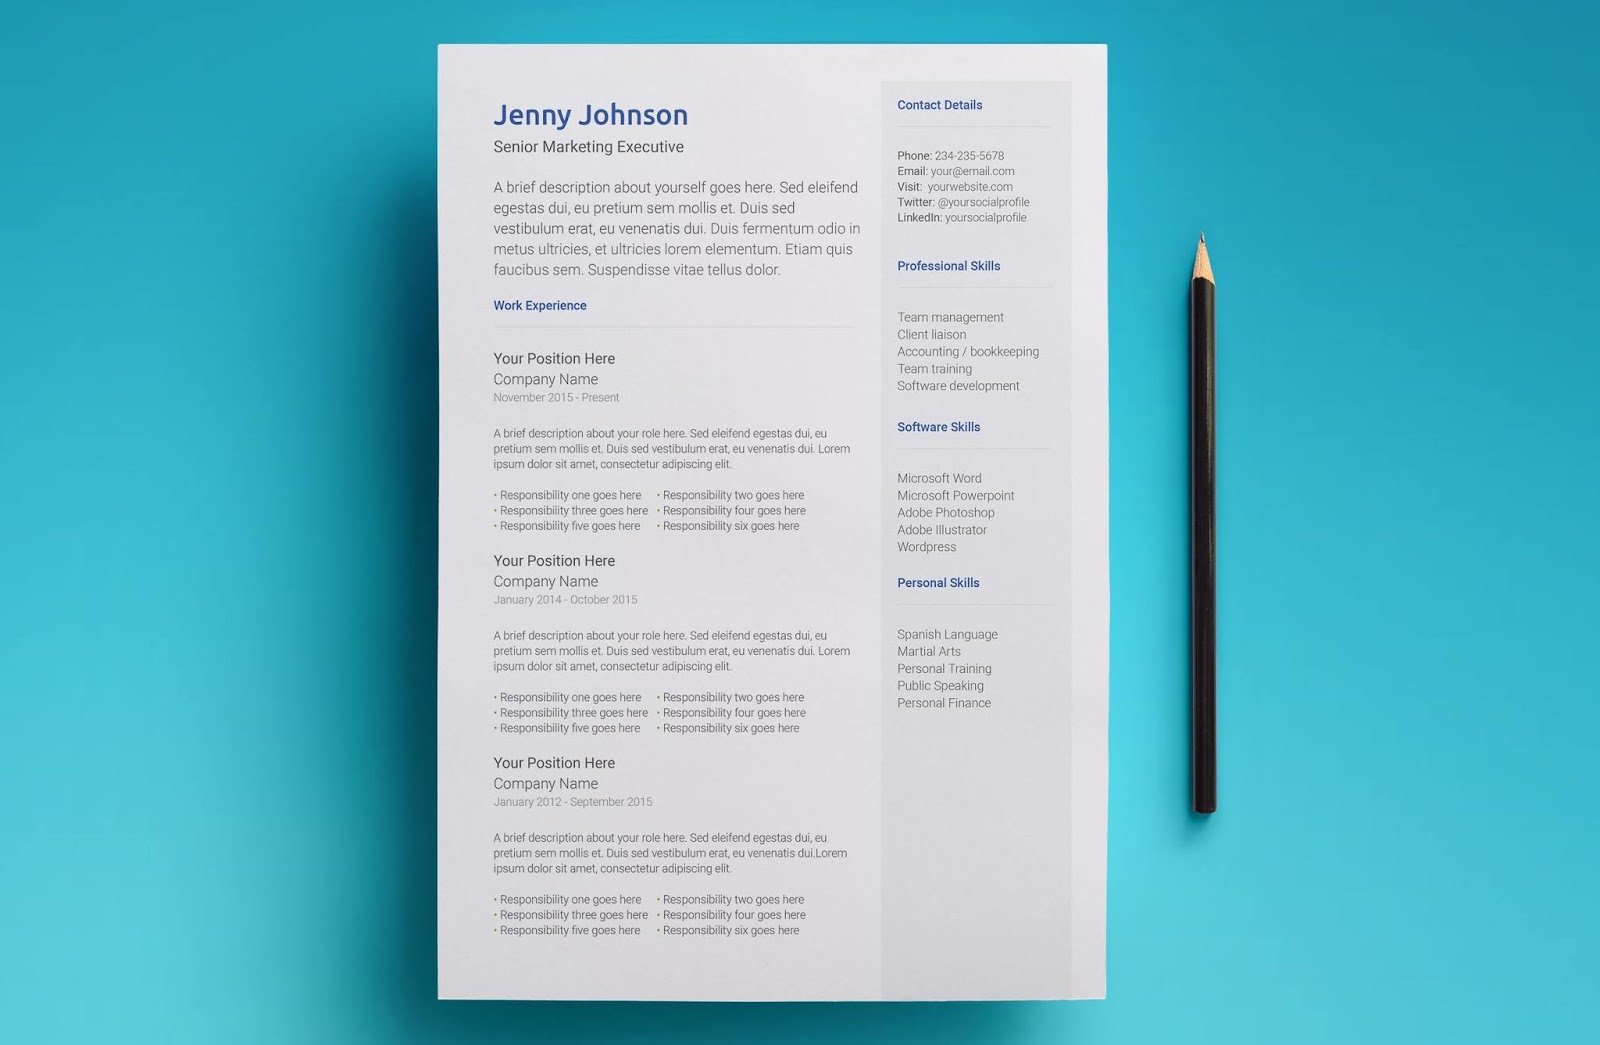 Beautiful Resume Templates Free 2019 Cool Resume Templates 2020 beautiful resume templates free word cool resume templates free amazing resume templates free 2019 cool resume templates free download amazing resume templates free word cool resume templates free word amazing resume templates free download 2020 cool resume template free cool resume design templates